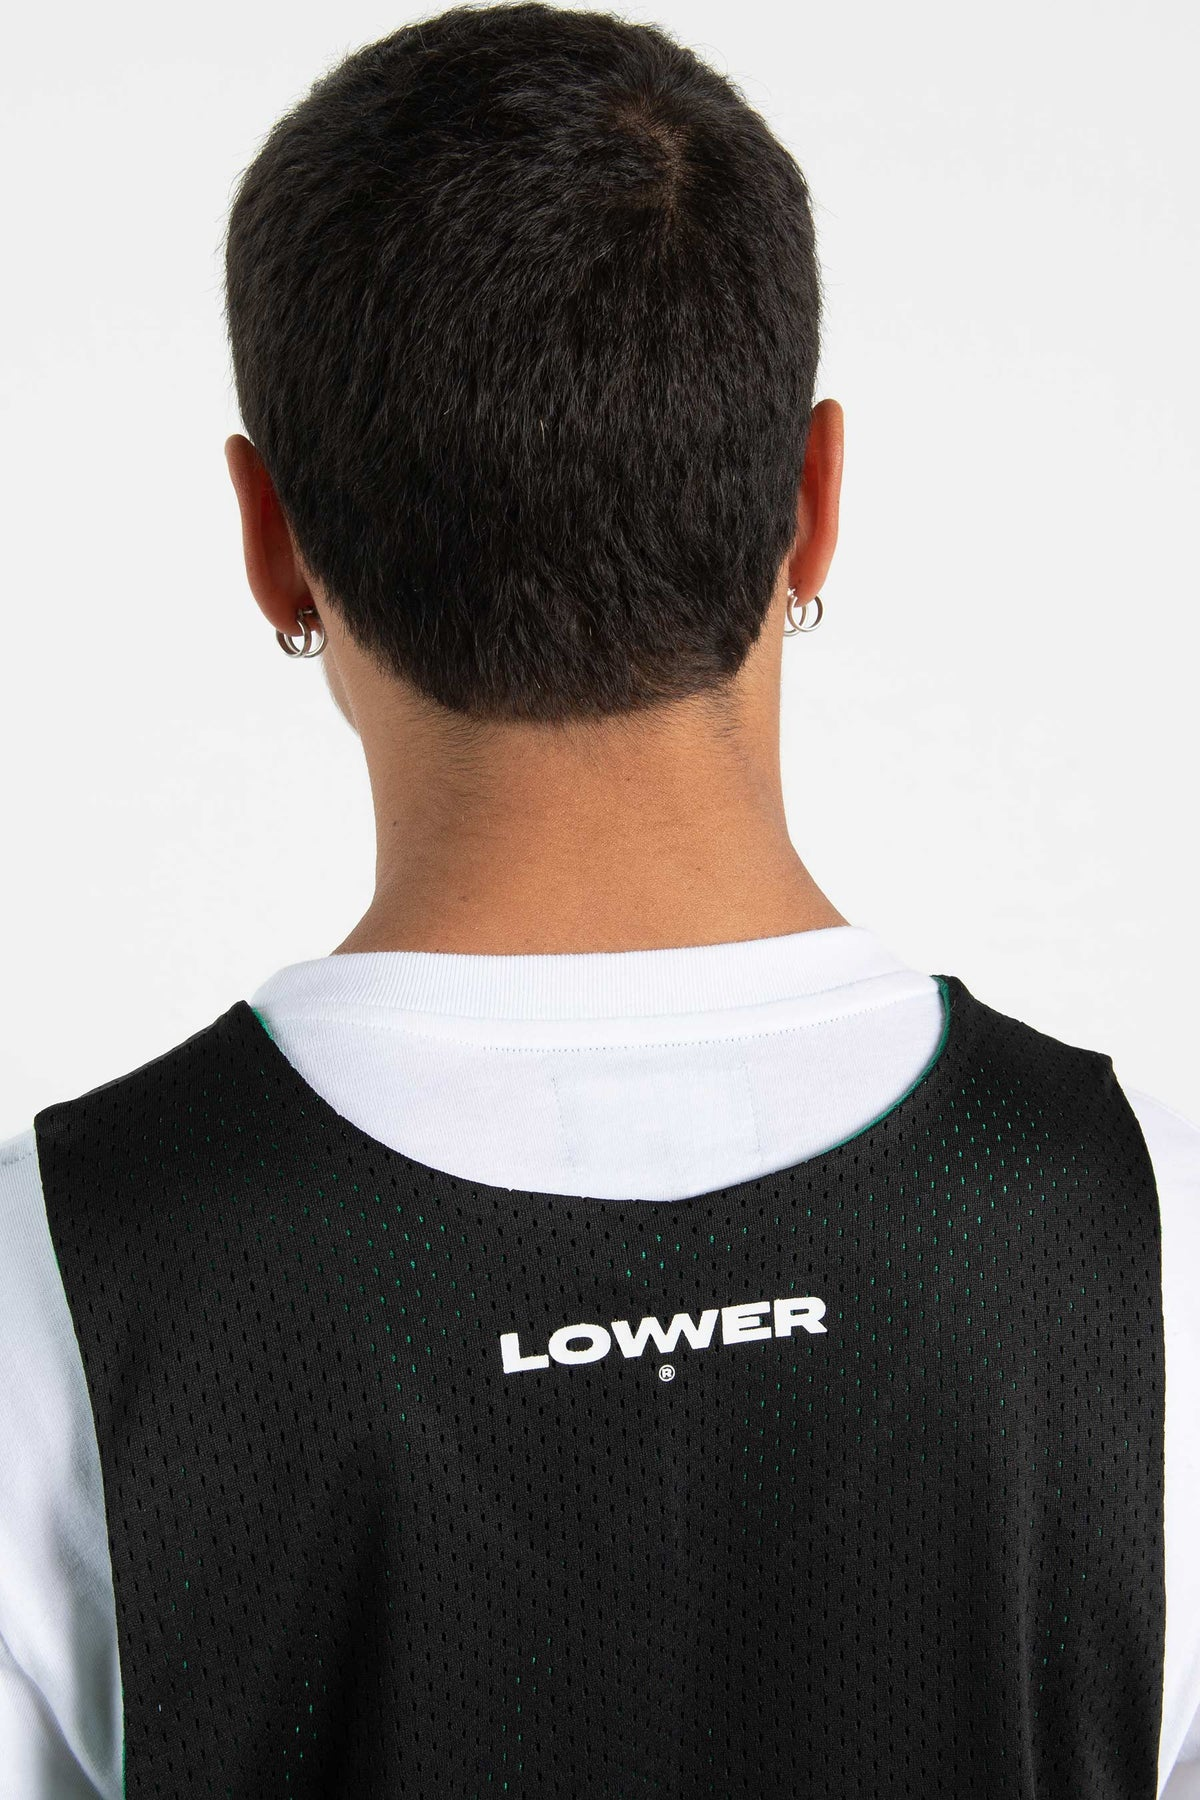 Mens Baller Singlet - Low Ball - Black/Green